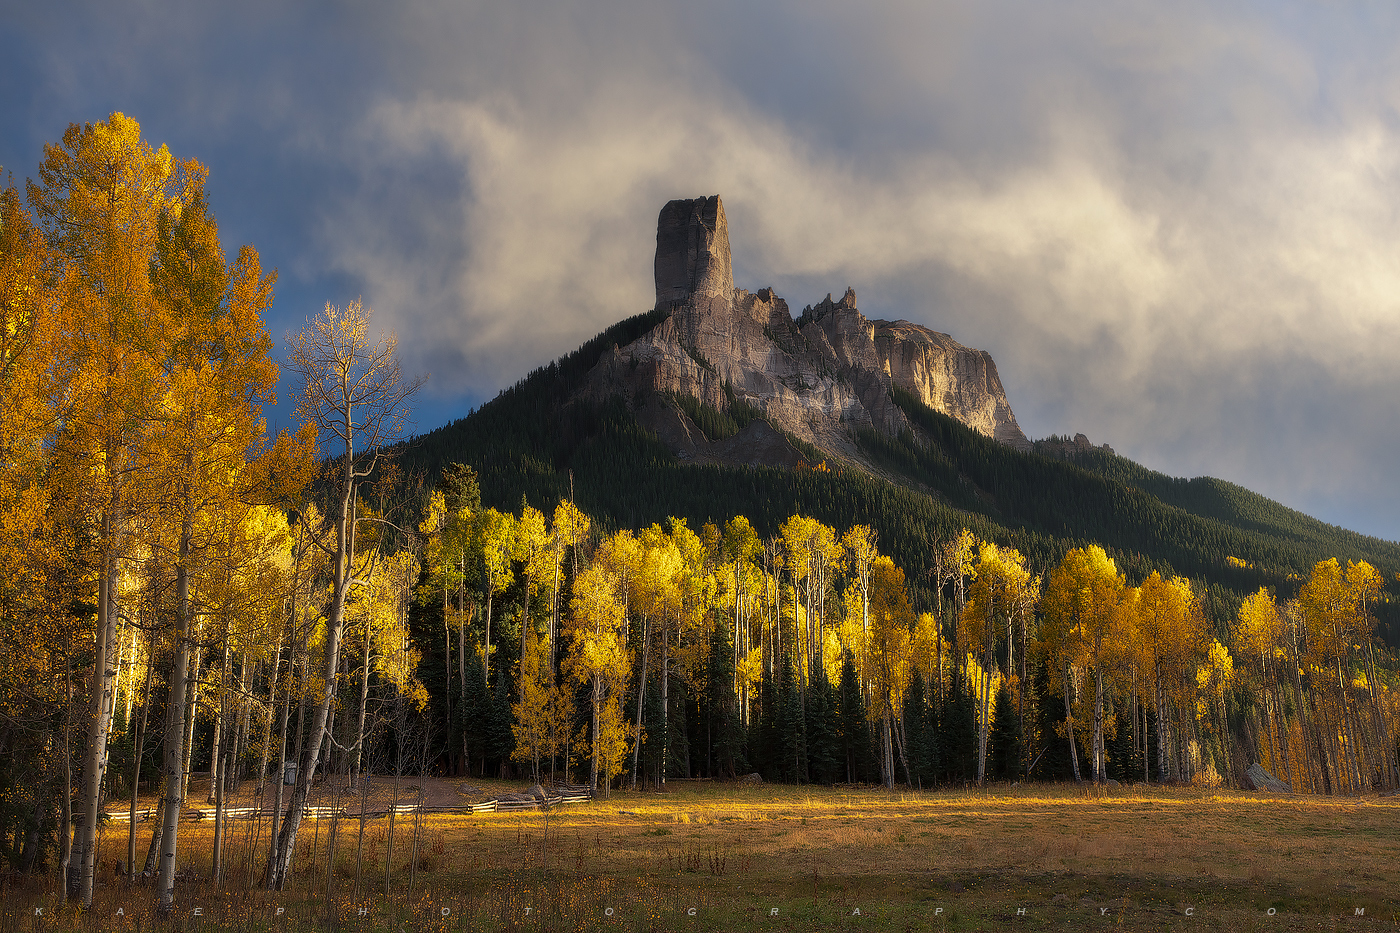 Chimney Rock towers over the beautiful True Grit movie scene, Colorado.  During fall color, the aspen trees provide for a beautiful...